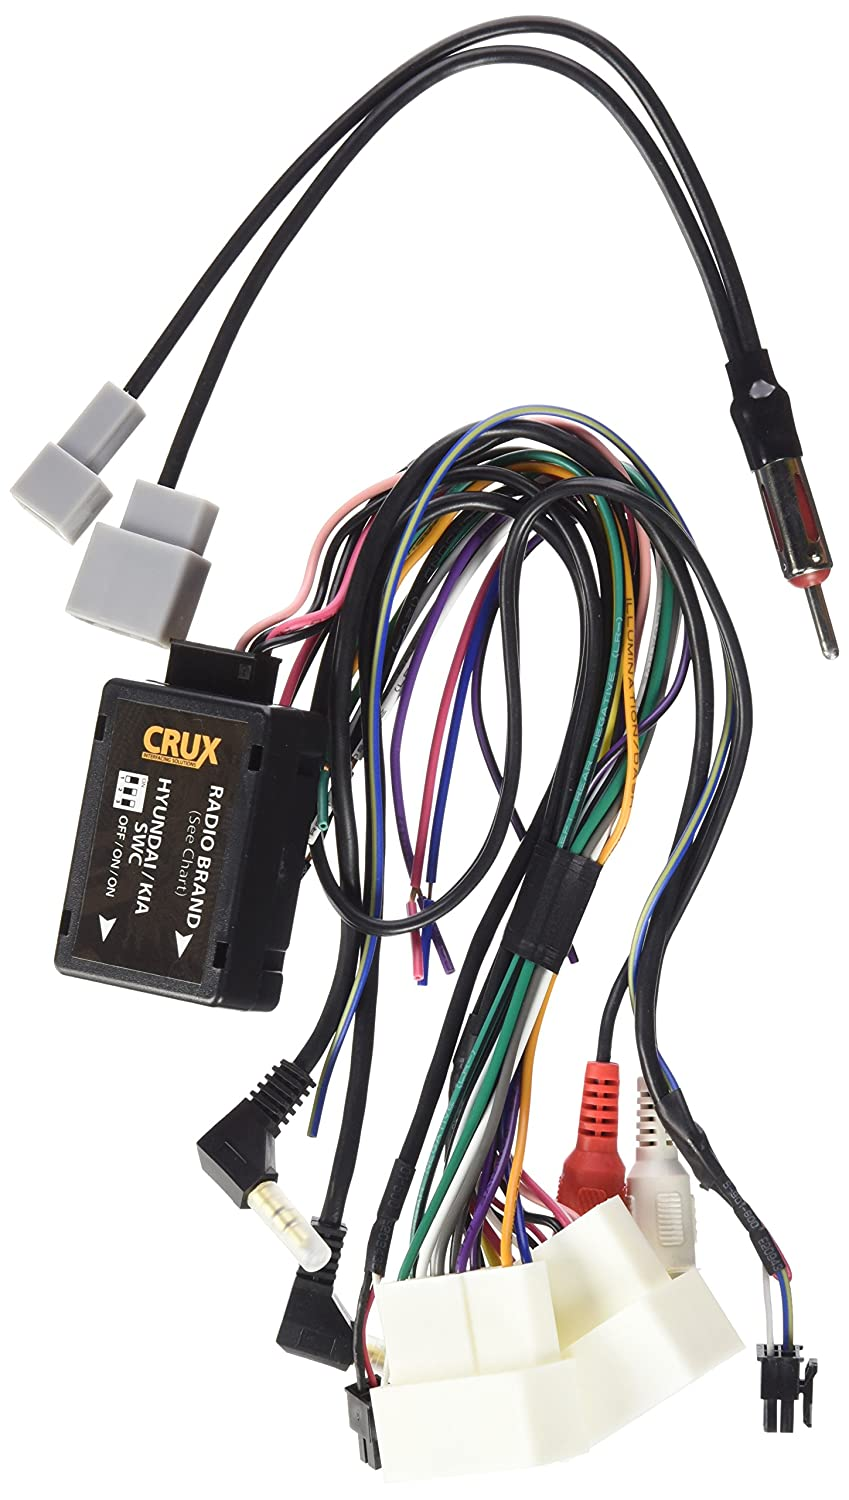 Crux Swrhk 65e Radio Replacement Interface For Select Pioneer Car Stereo Wiring Adapters Kia Rio Hyundai And Vehicles 2010 2014 Automotive